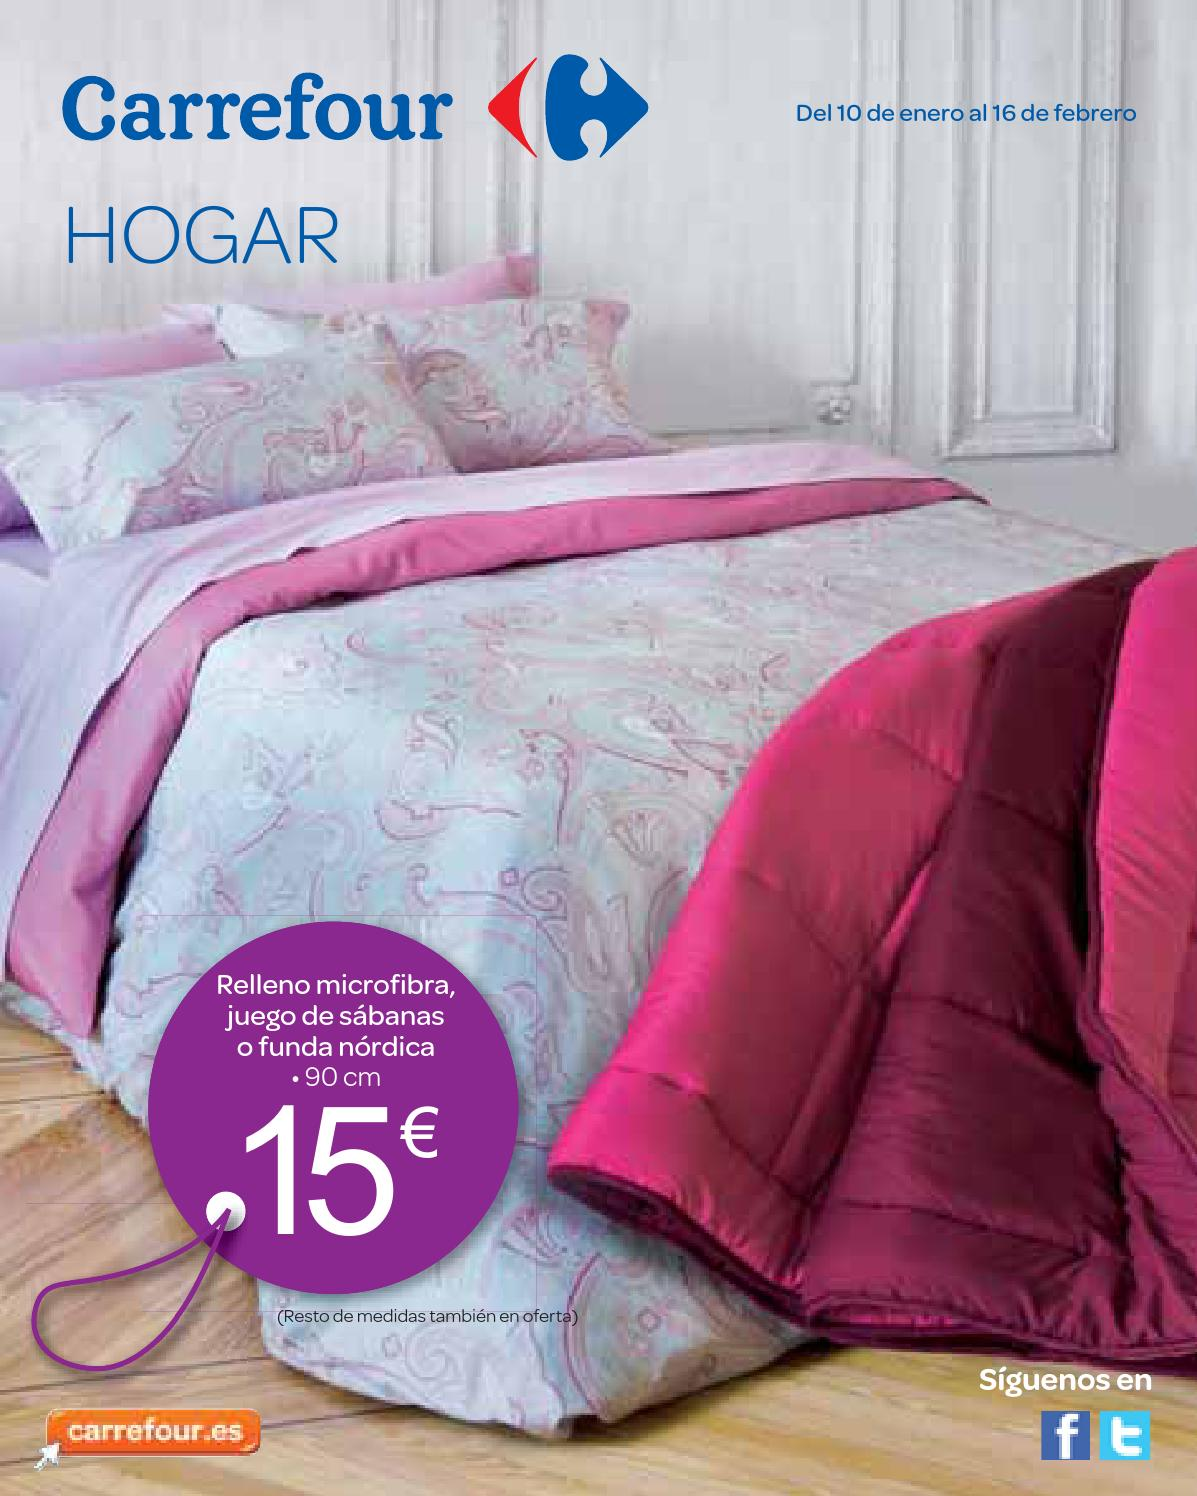 Muebles Carrefour Online Ofertas Carrefour Hogar By Carrefour Online - Issuu